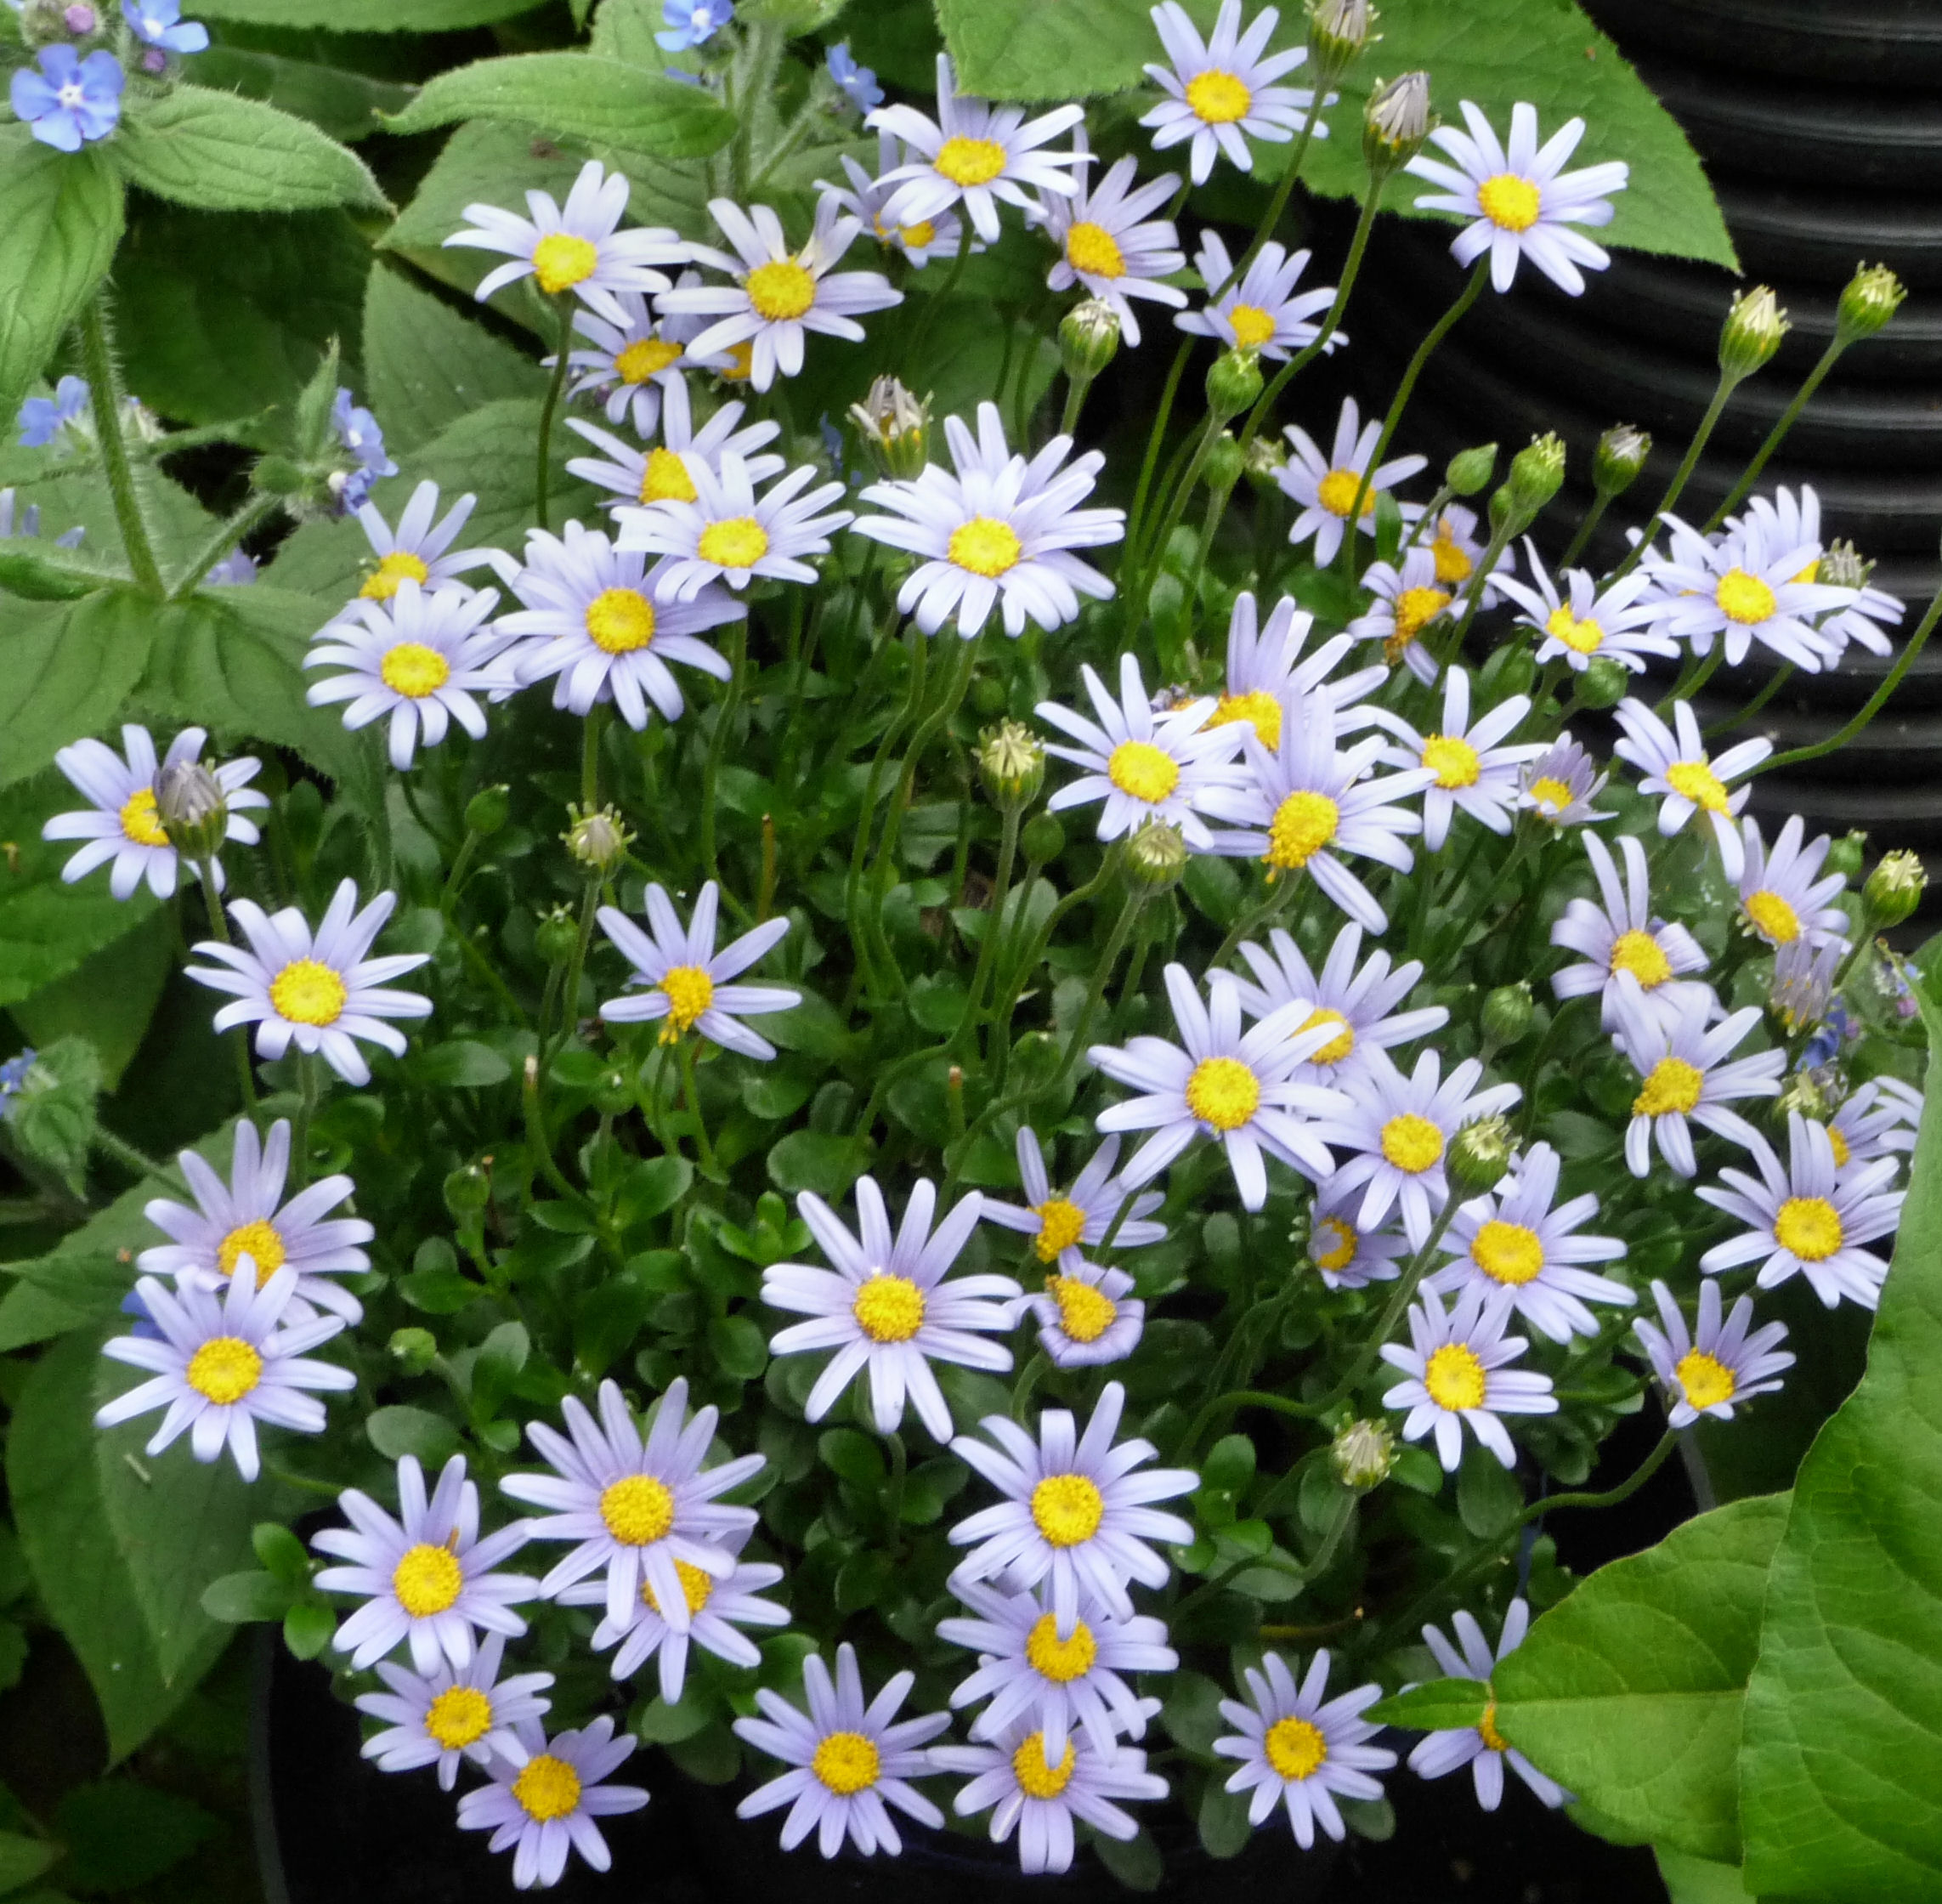 Felicia amelloides blue daisy highbury wildlife gardenhighbury this native of south africa has bright sky blue daisy flowers its small shiny leaves and stems are brittle they break rather than bend izmirmasajfo